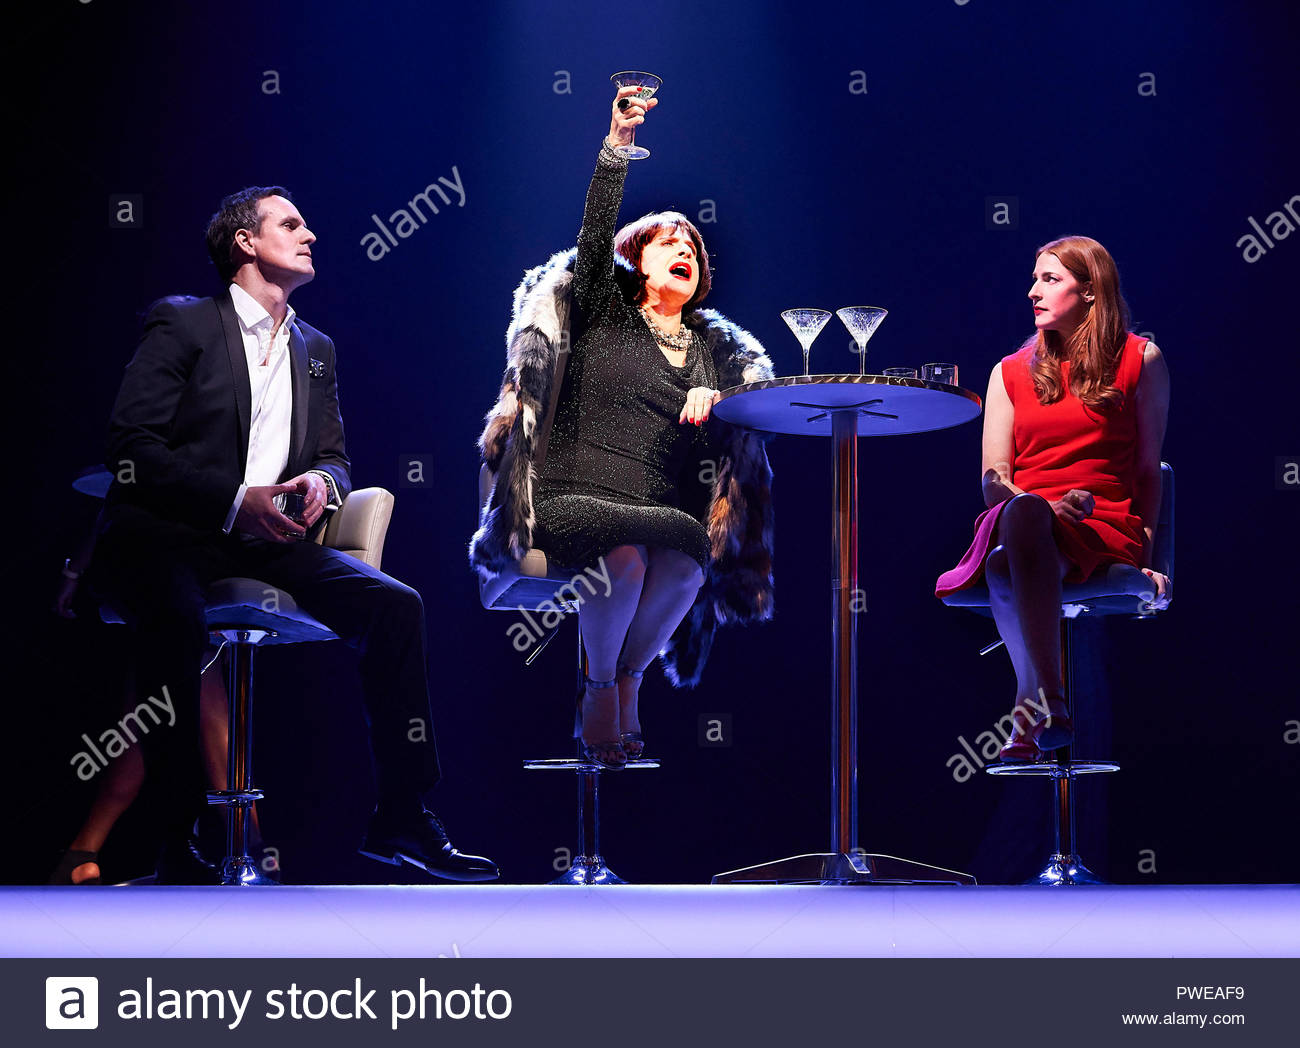 London, UK, 16th Oct 2018. Company, a Musical Comedy, Music and Lyrics by Stephen Sondheim, book by George Furth. Directed by Marianne Elliott. With Ben Lewis as Larry, Patti Lupone as Joanne, Rosalie Craig as Bobbie. Opens at The Gielgud Theatre on 17/10/18. CREDIT Geraint Lewis EDITORIAL USE ONLY Credit: Geraint Lewis/Alamy Live News - Stock Image